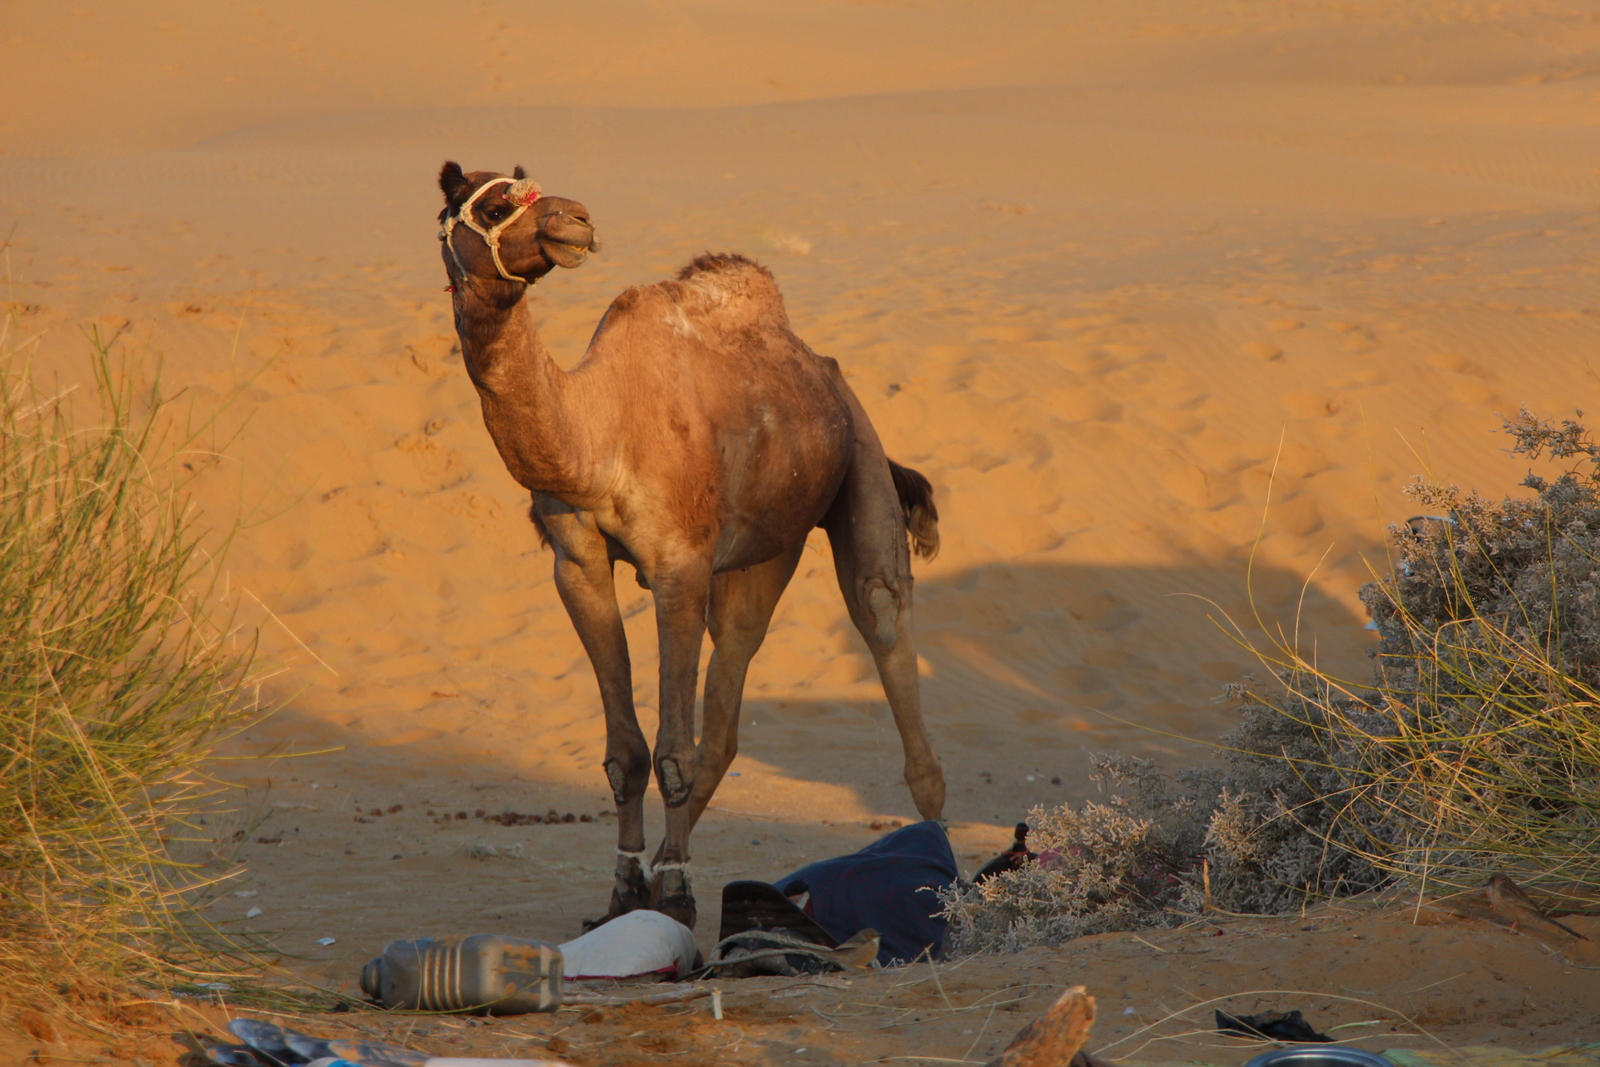 Whenever we stopped for a meal or to rest, the camels were unloaded and allowed to wander as they liked. To ensure that they didn't wander off too far, our guides tied their front legs together, like you can see here.